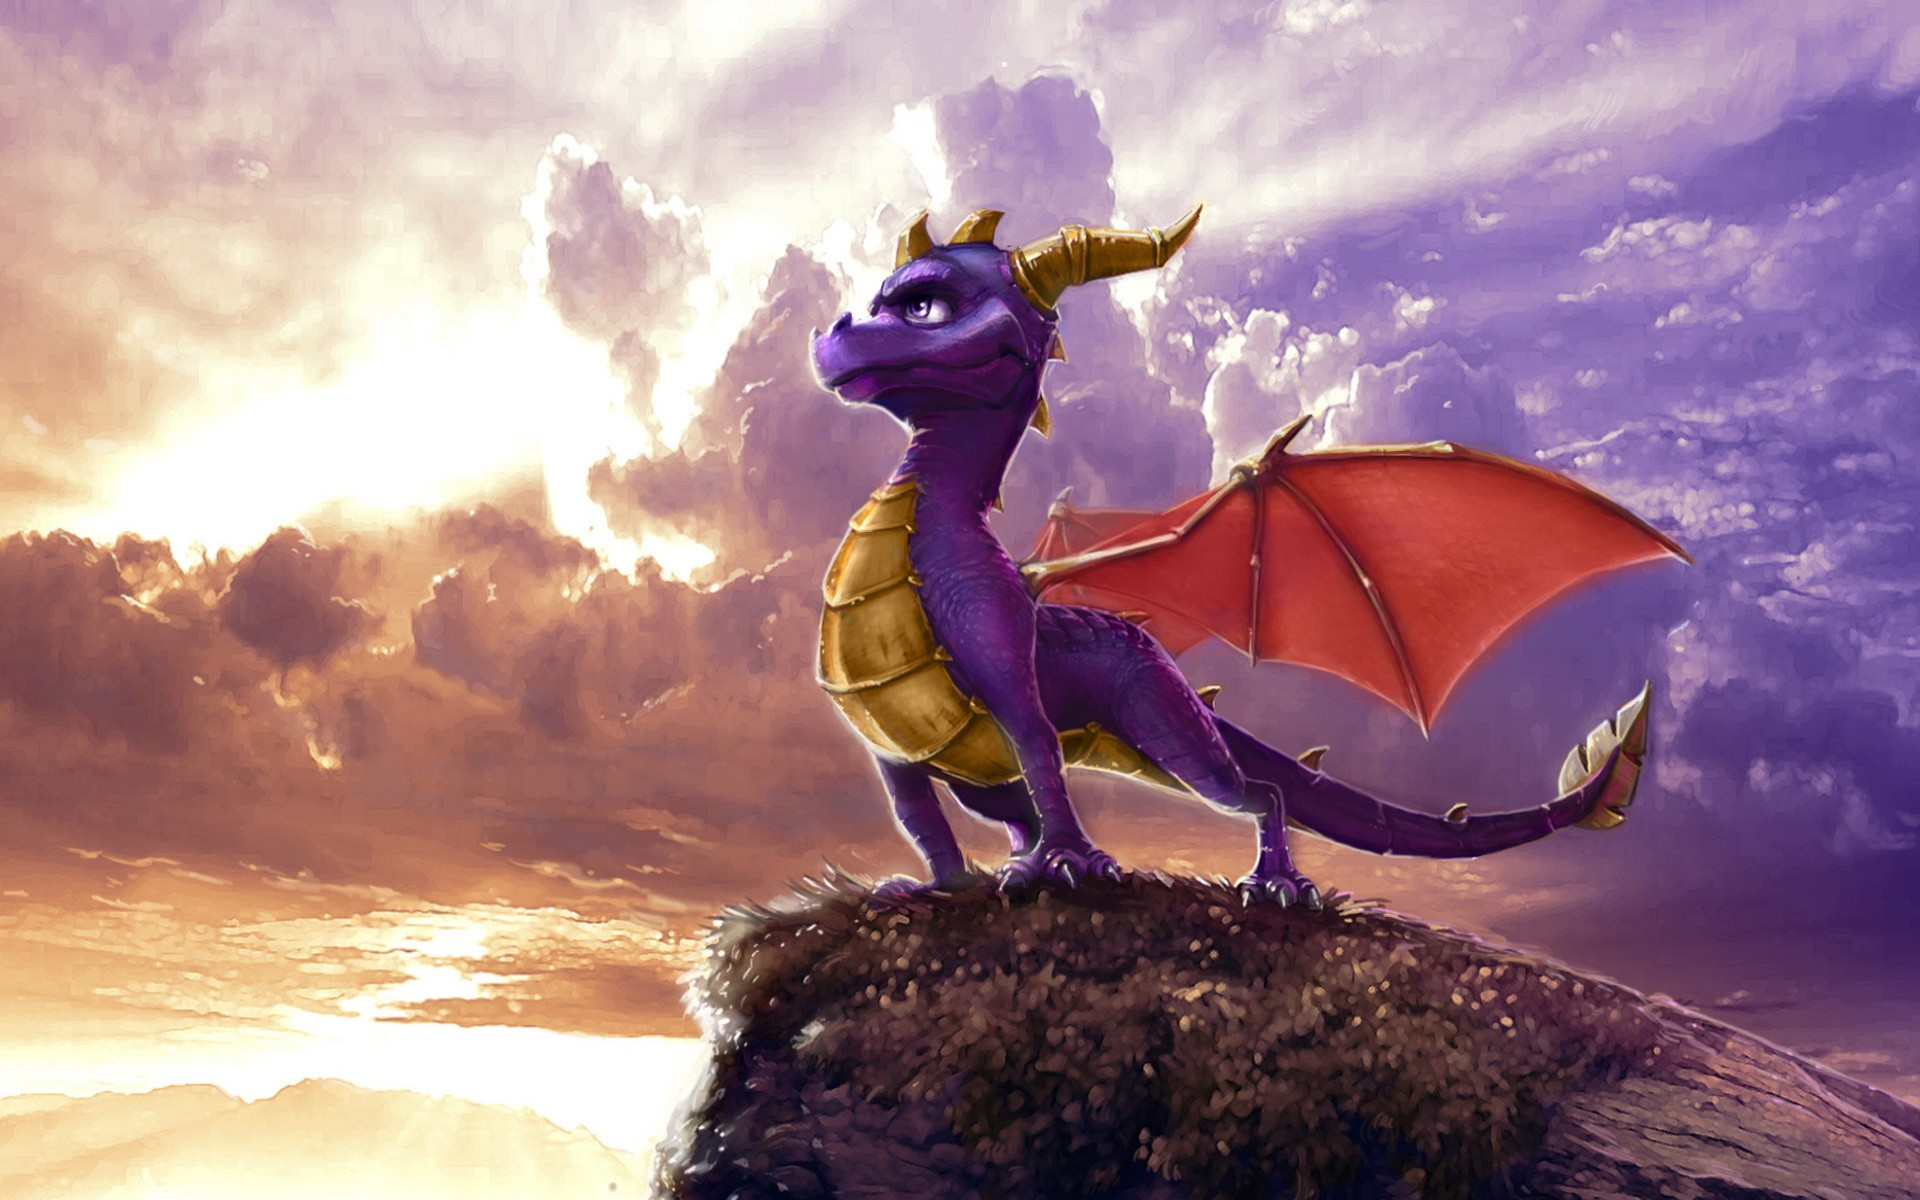 will there be a new spyro game